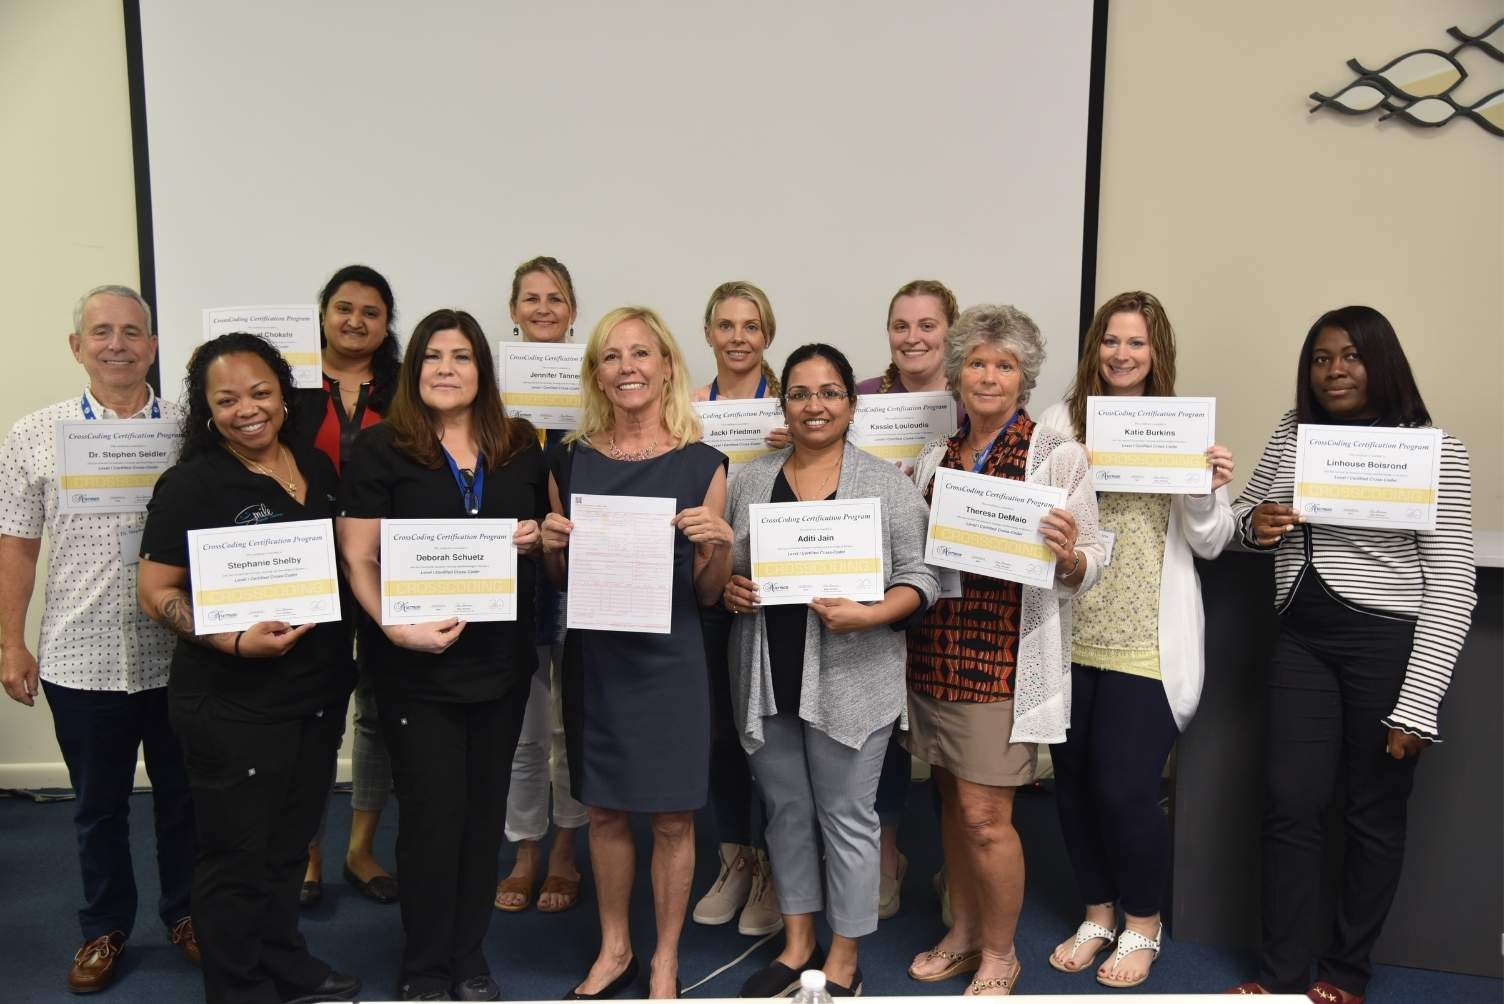 Rose Nierman with Medical Billing/ CrossCoding Attendees and their certificates